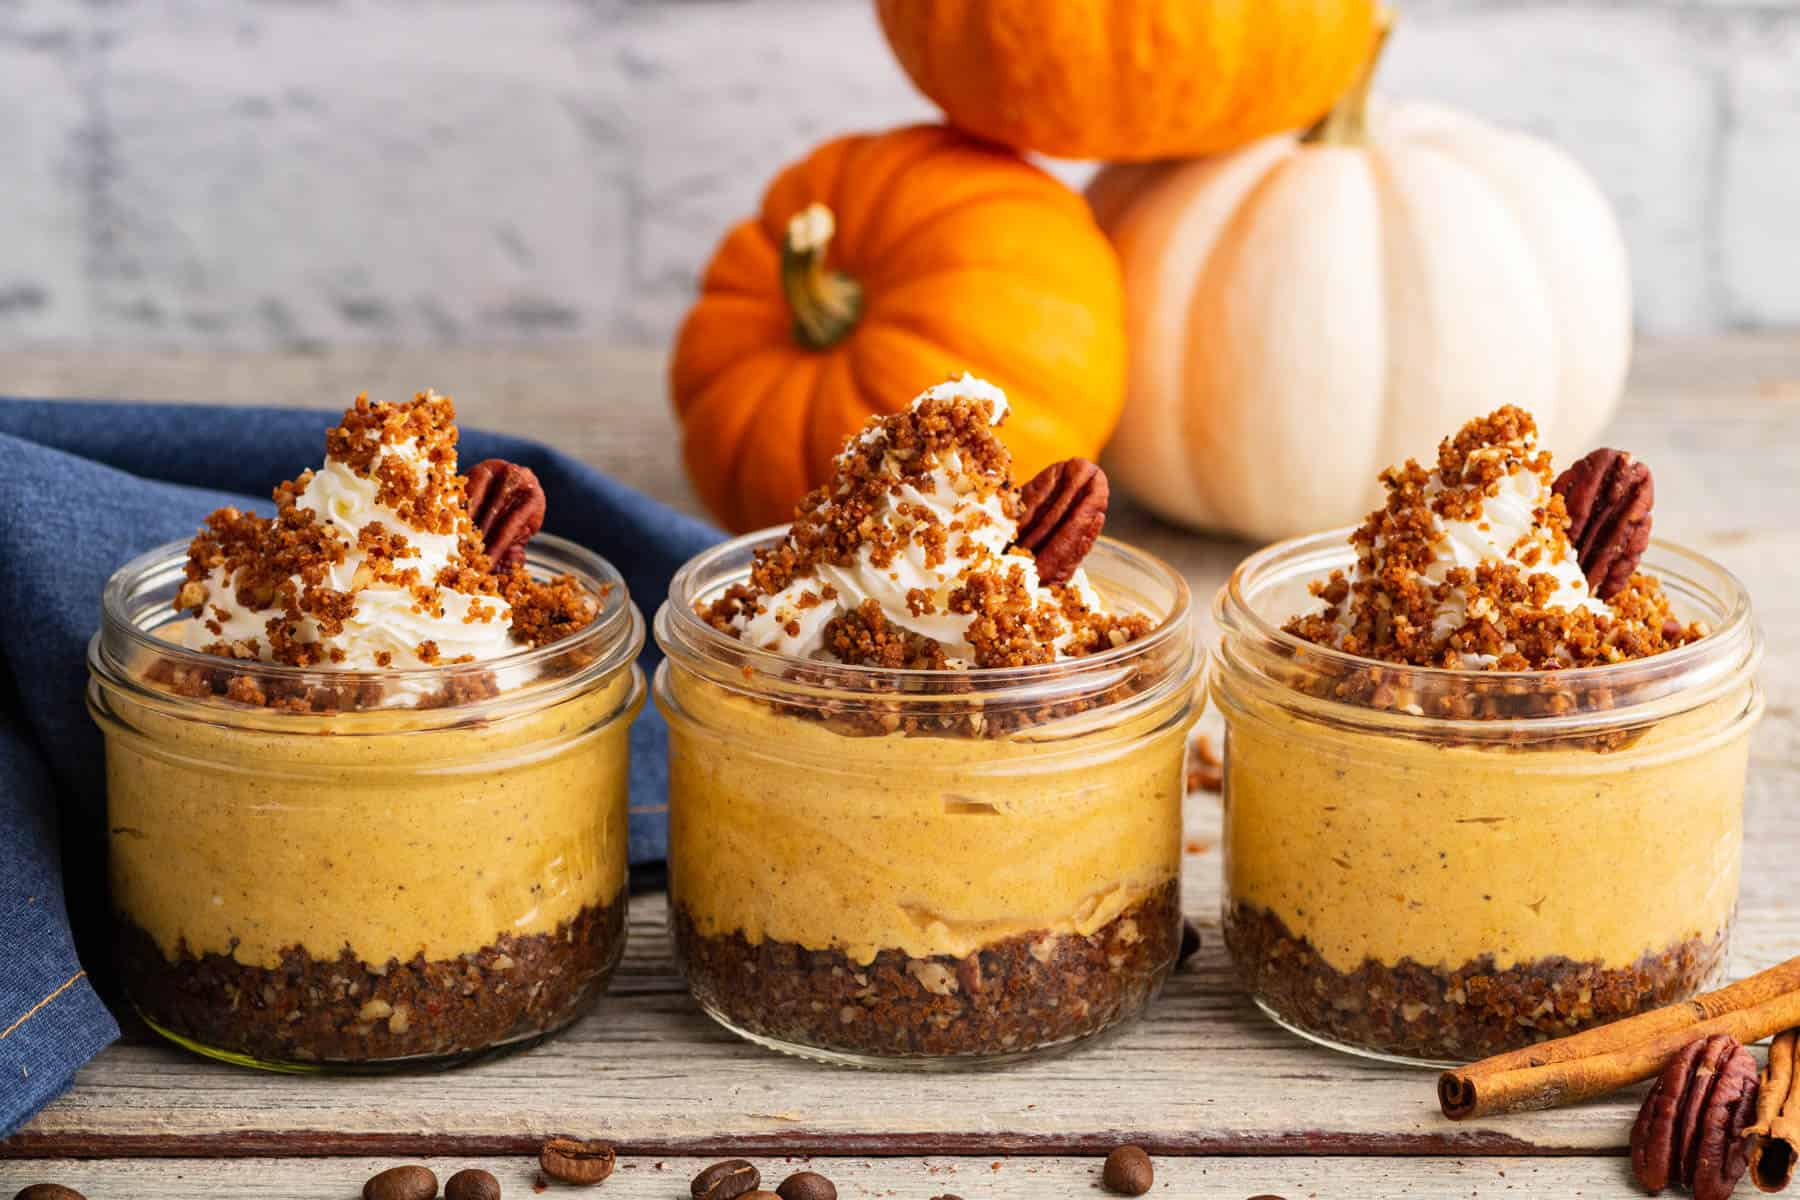 Three individually sized Pumpkin Delight desserts topped with gingersnap crumbs and pecans sit amongst decorative pumpkins.